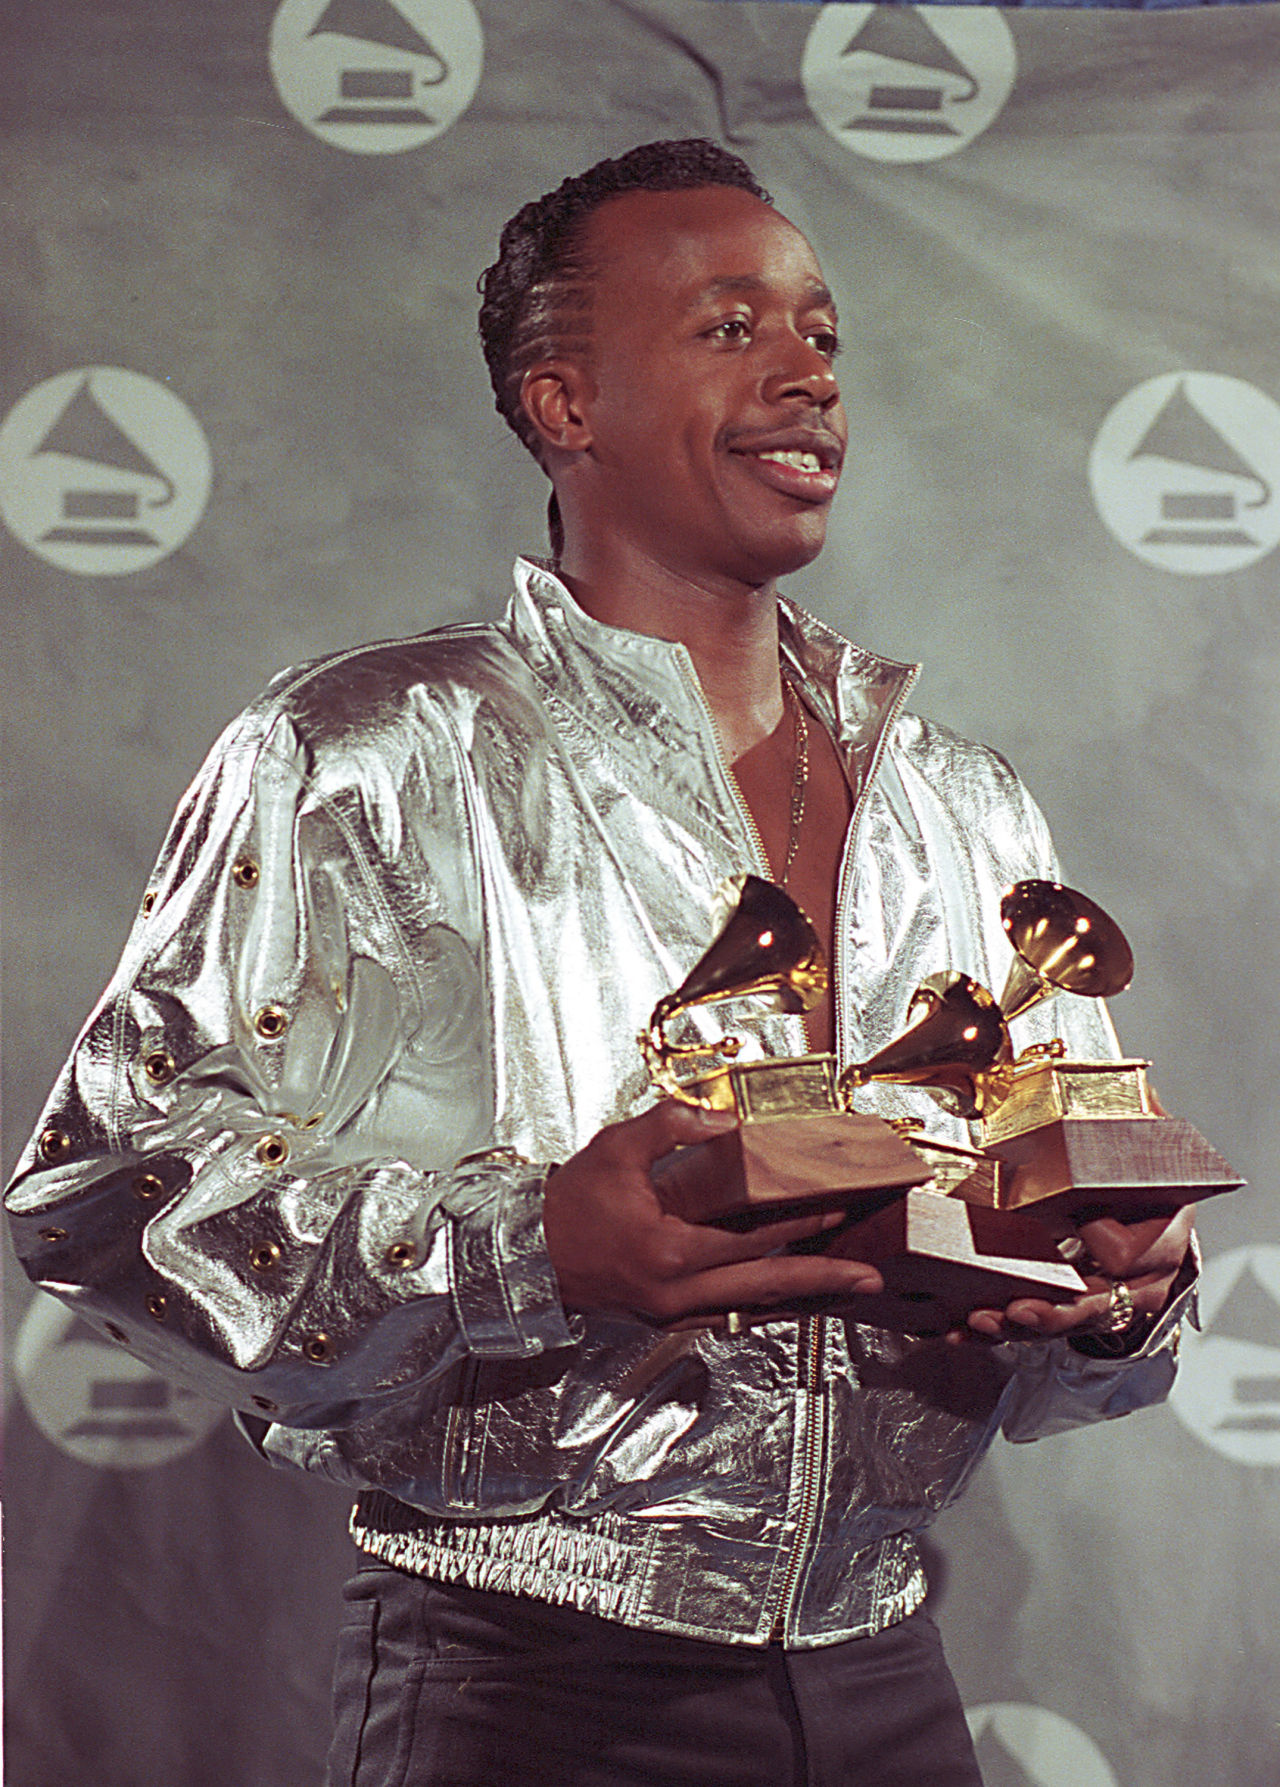 """Rap musician MC Hammer poses backstage with his Grammys during the 33rd annual Grammy Awards at New York's Radio City Music Hall, Wednesday night, Feb. 20, 1991.  Hammer won in the categories of best rhythm and blues song and best rap solo performance for """"U Can't Touch This.""""  (AP Photo/Susan Ragan)"""